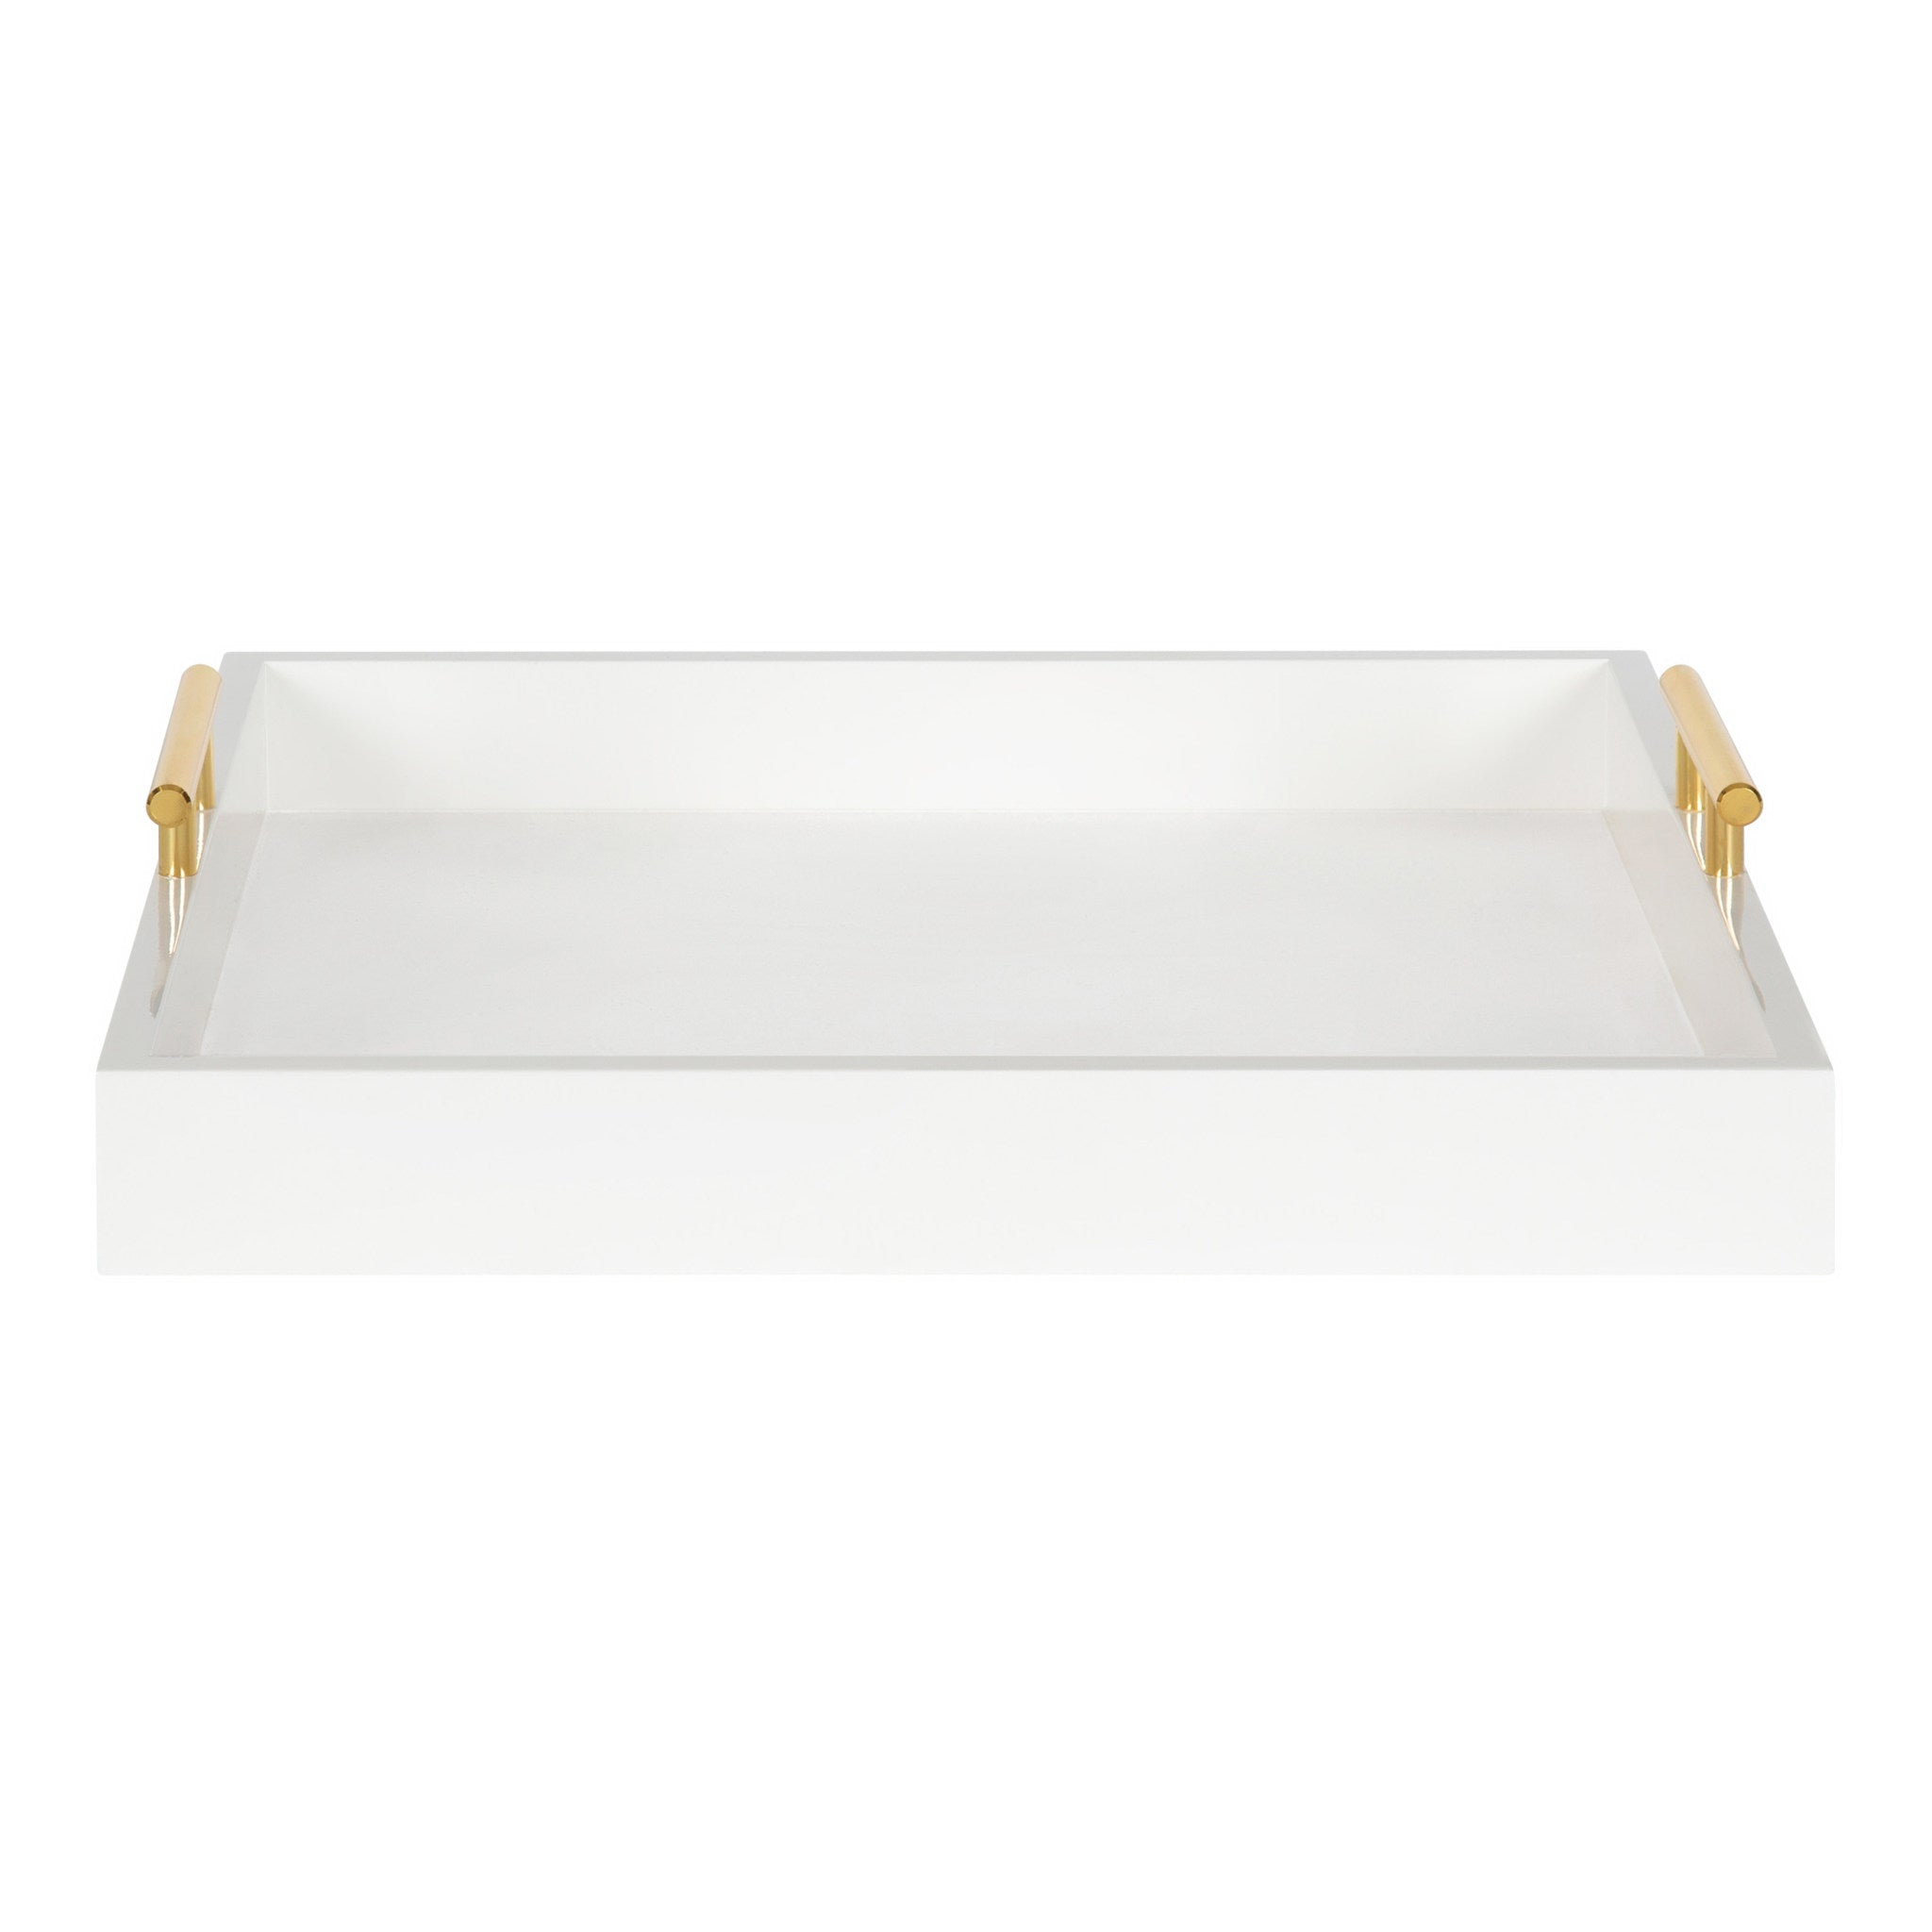 Single Tray, Glam, White